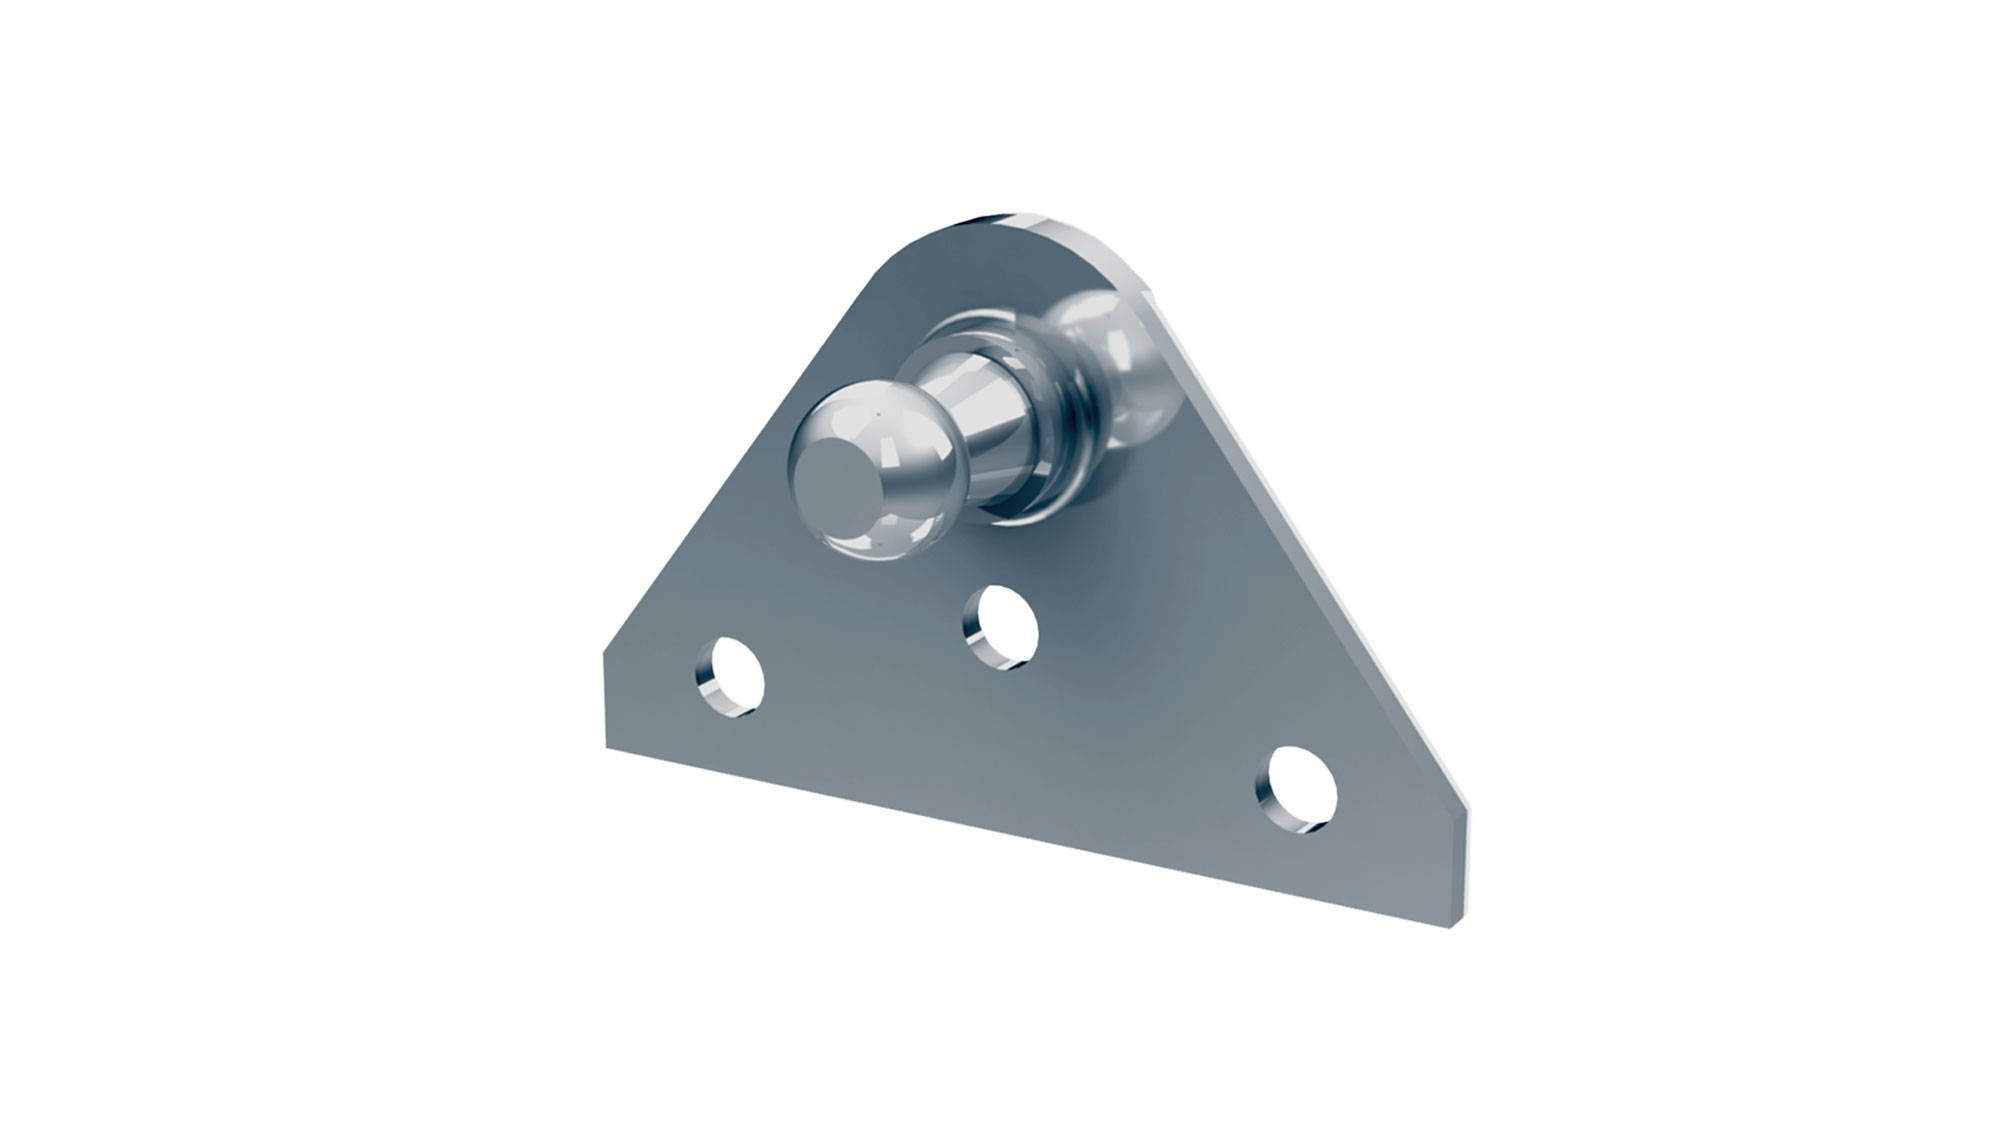 10mm ball stud flat mounting bracket